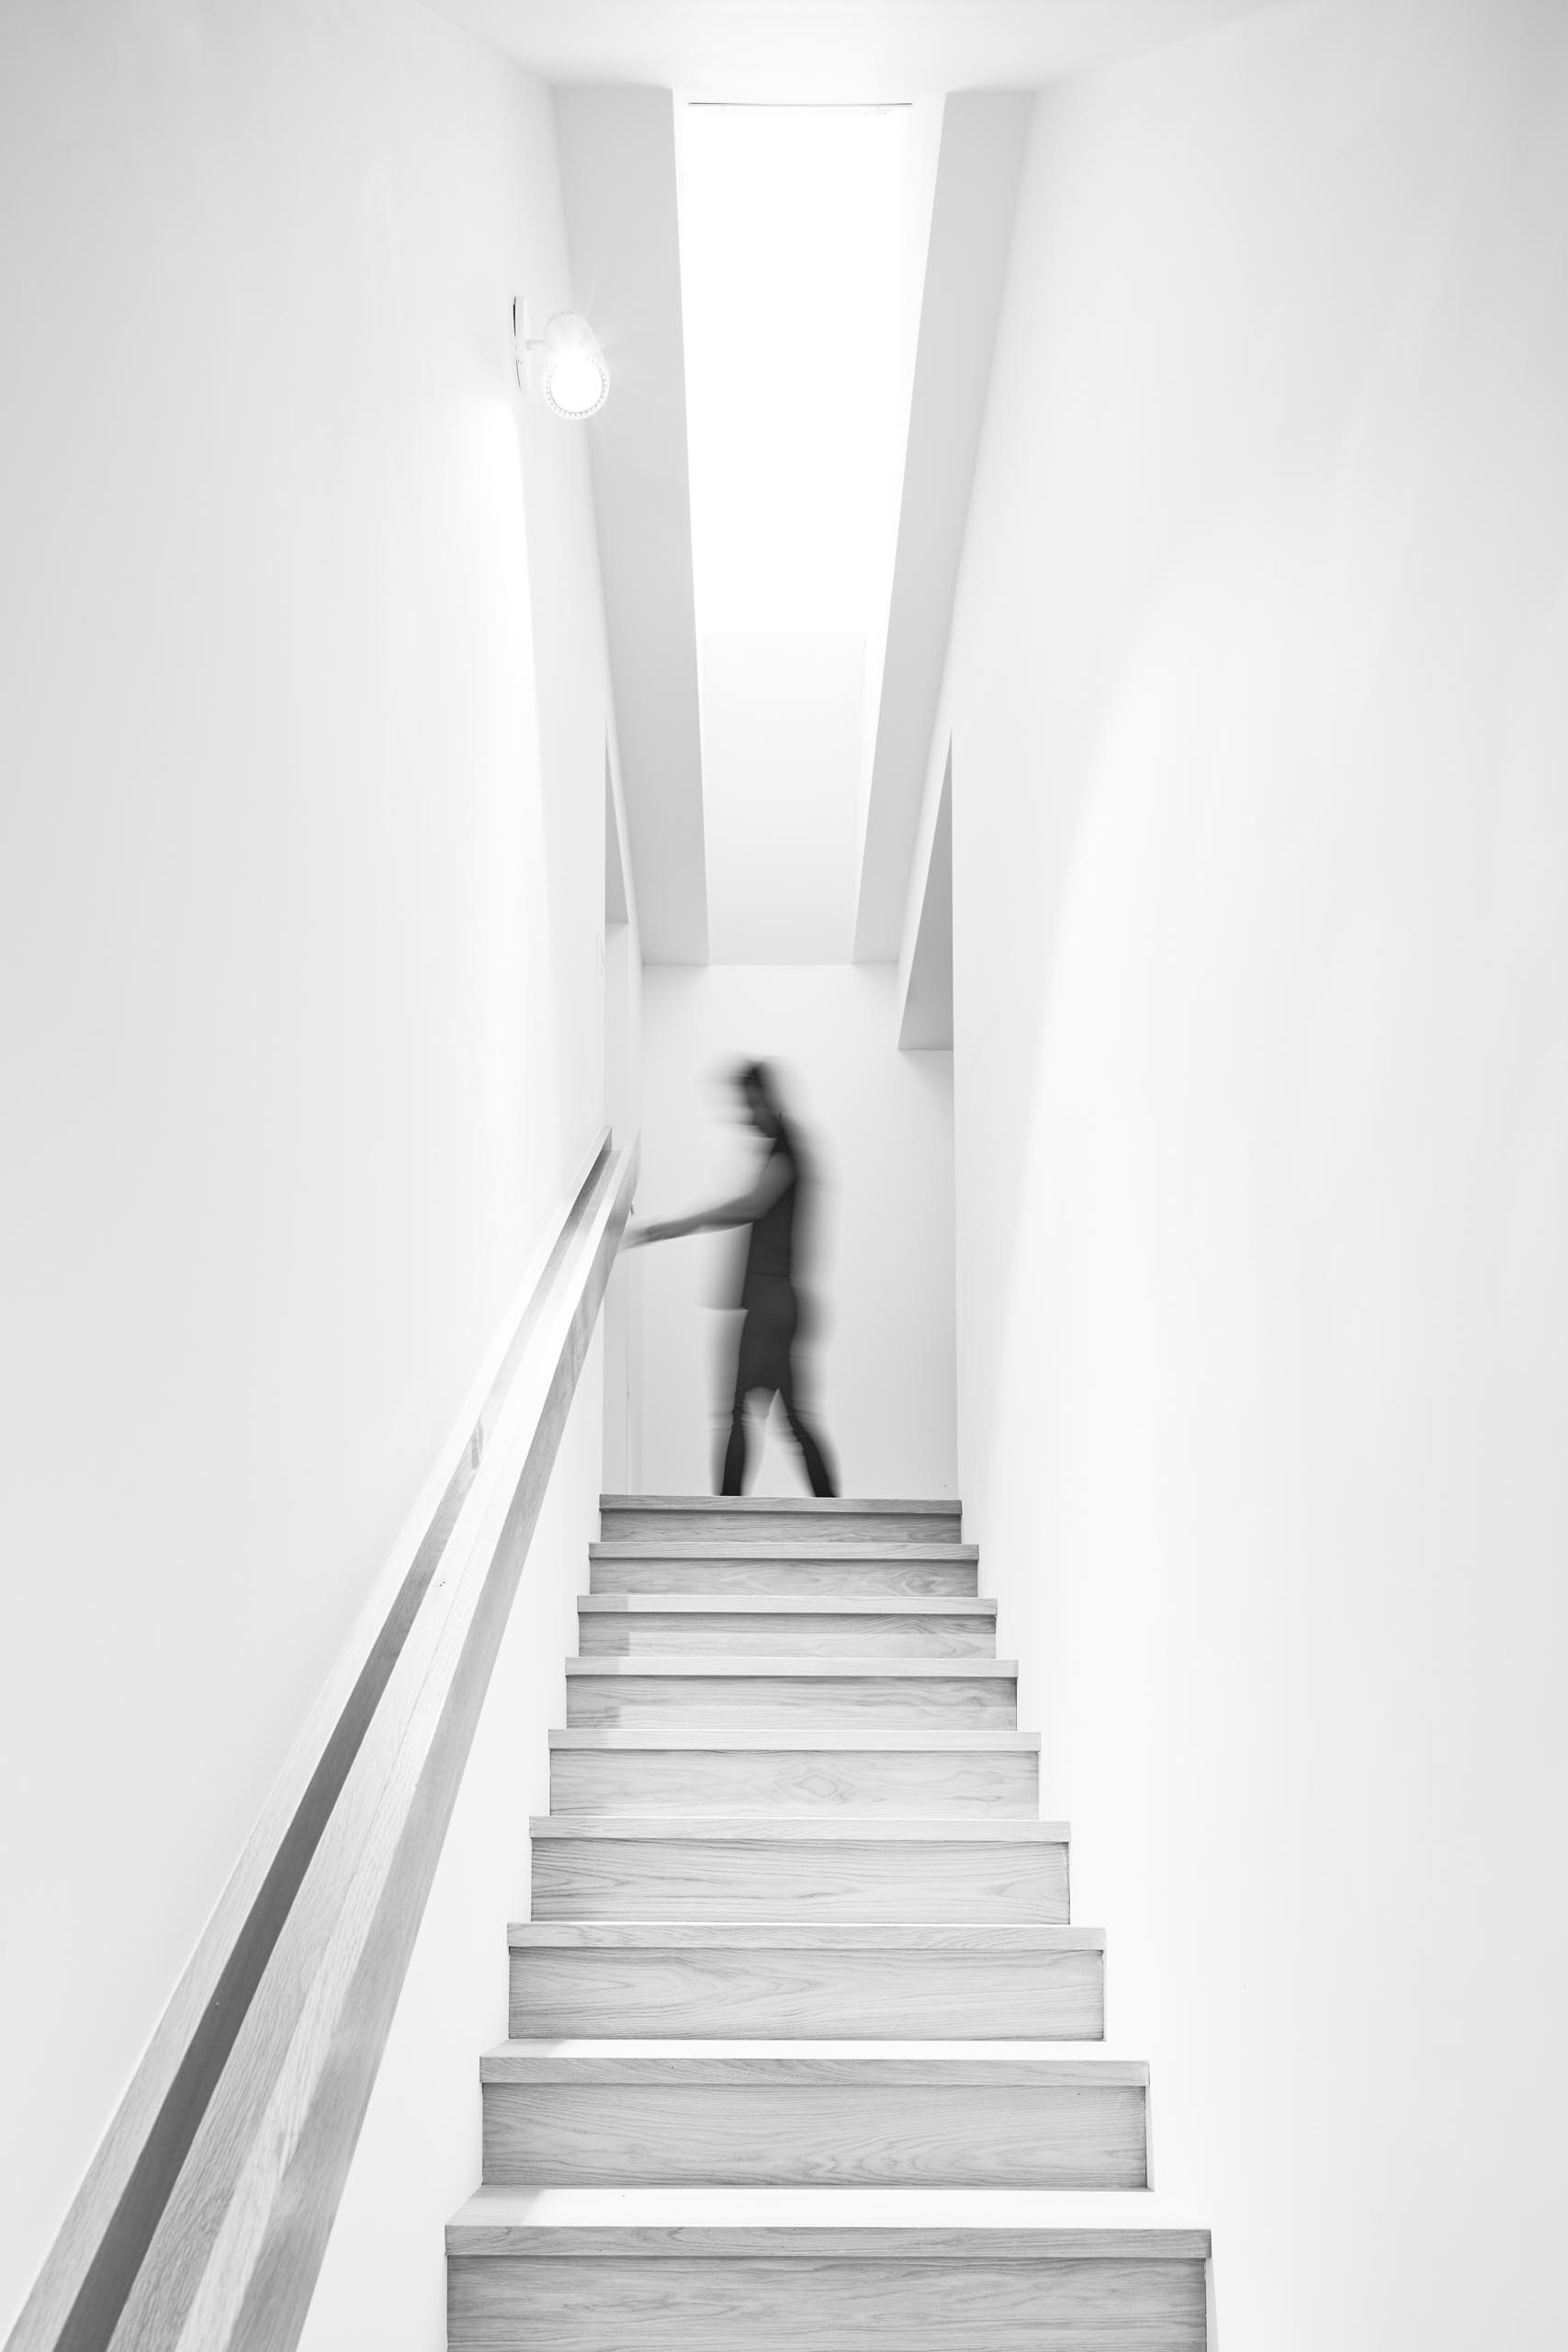 A staircase surrounded by white walls connects the social areas with the bedrooms and bathrooms on the upper floors of the home.